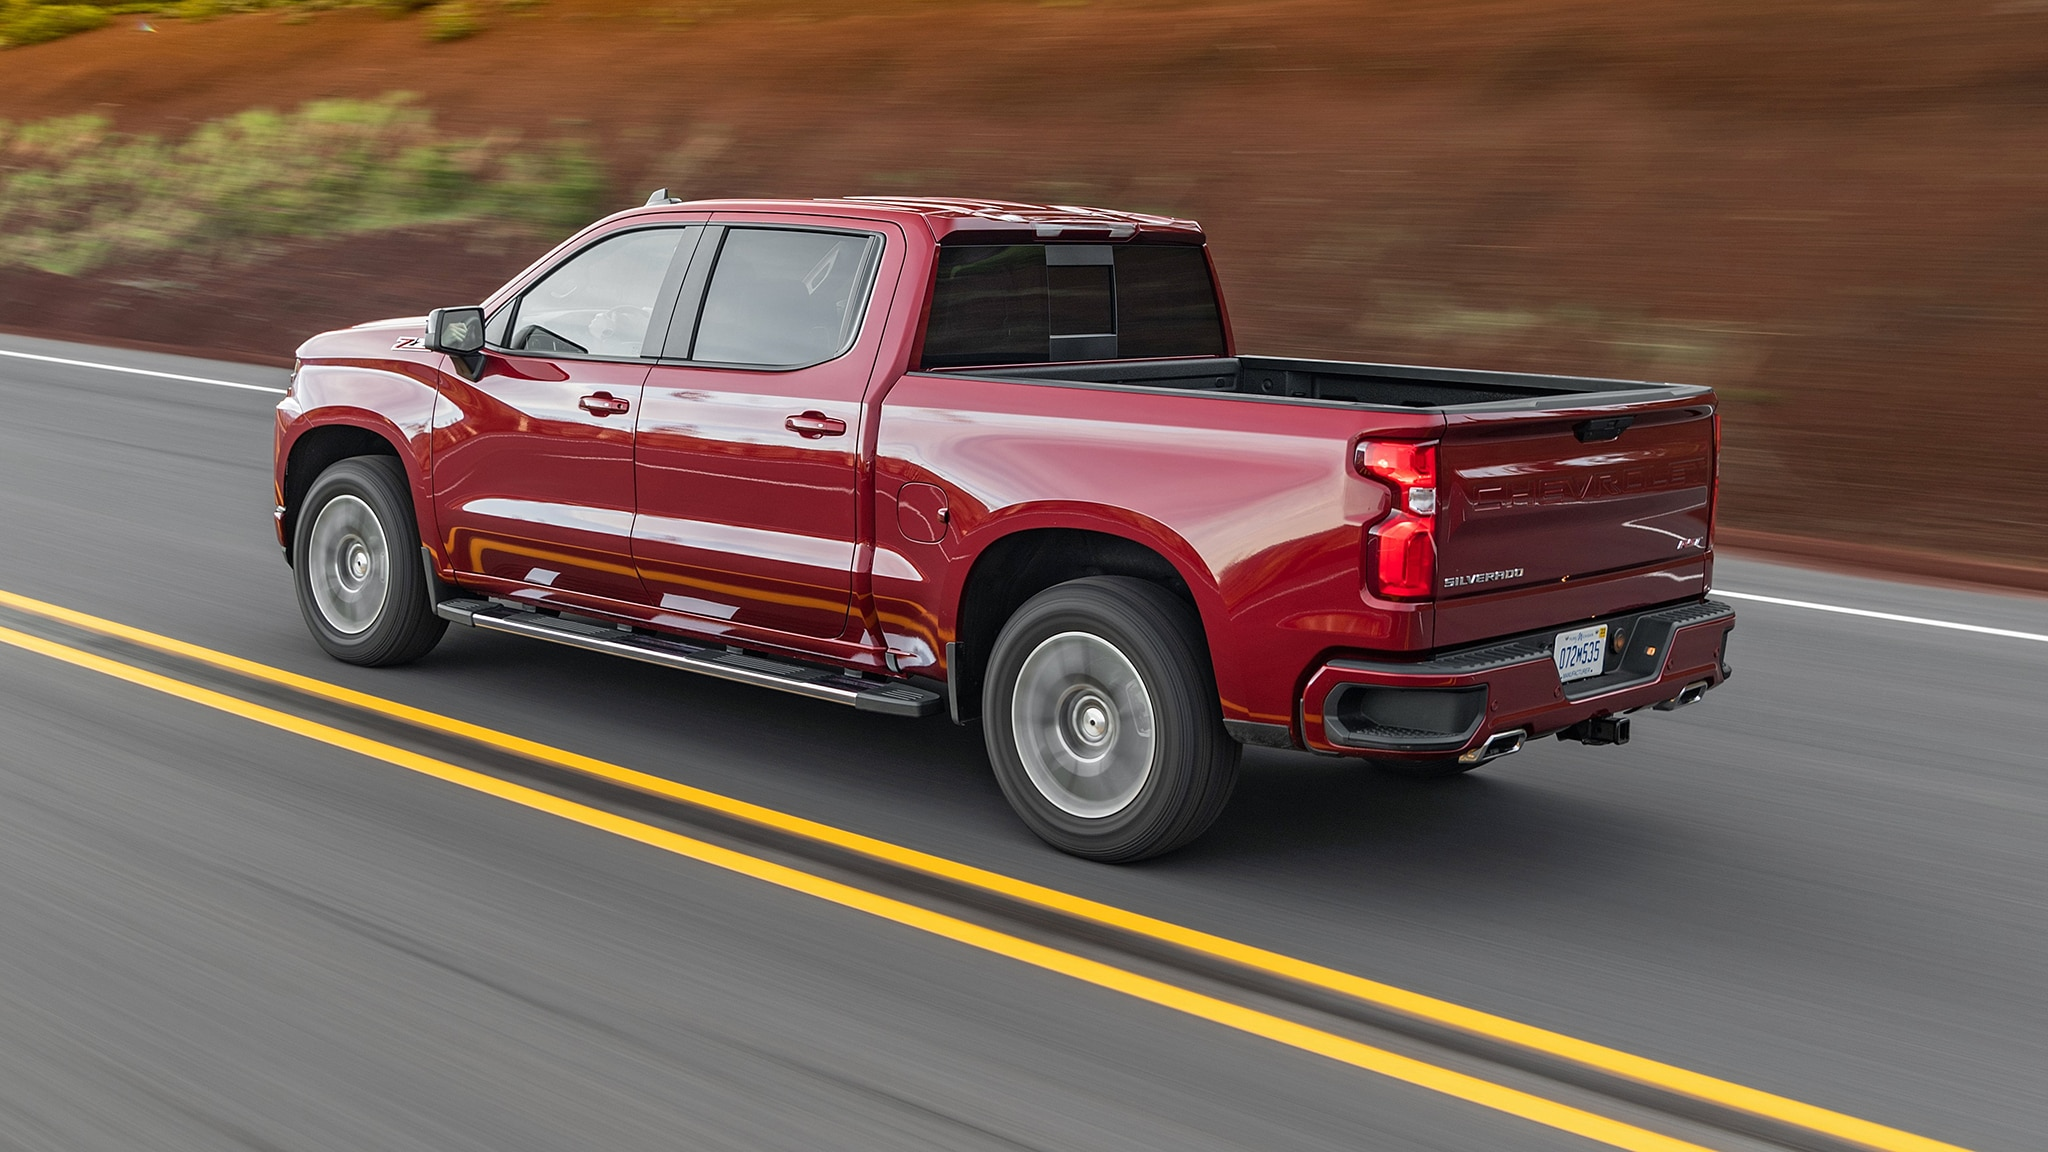 2020 Chevrolet Silverado 1500 Diesel First Drive Review ...